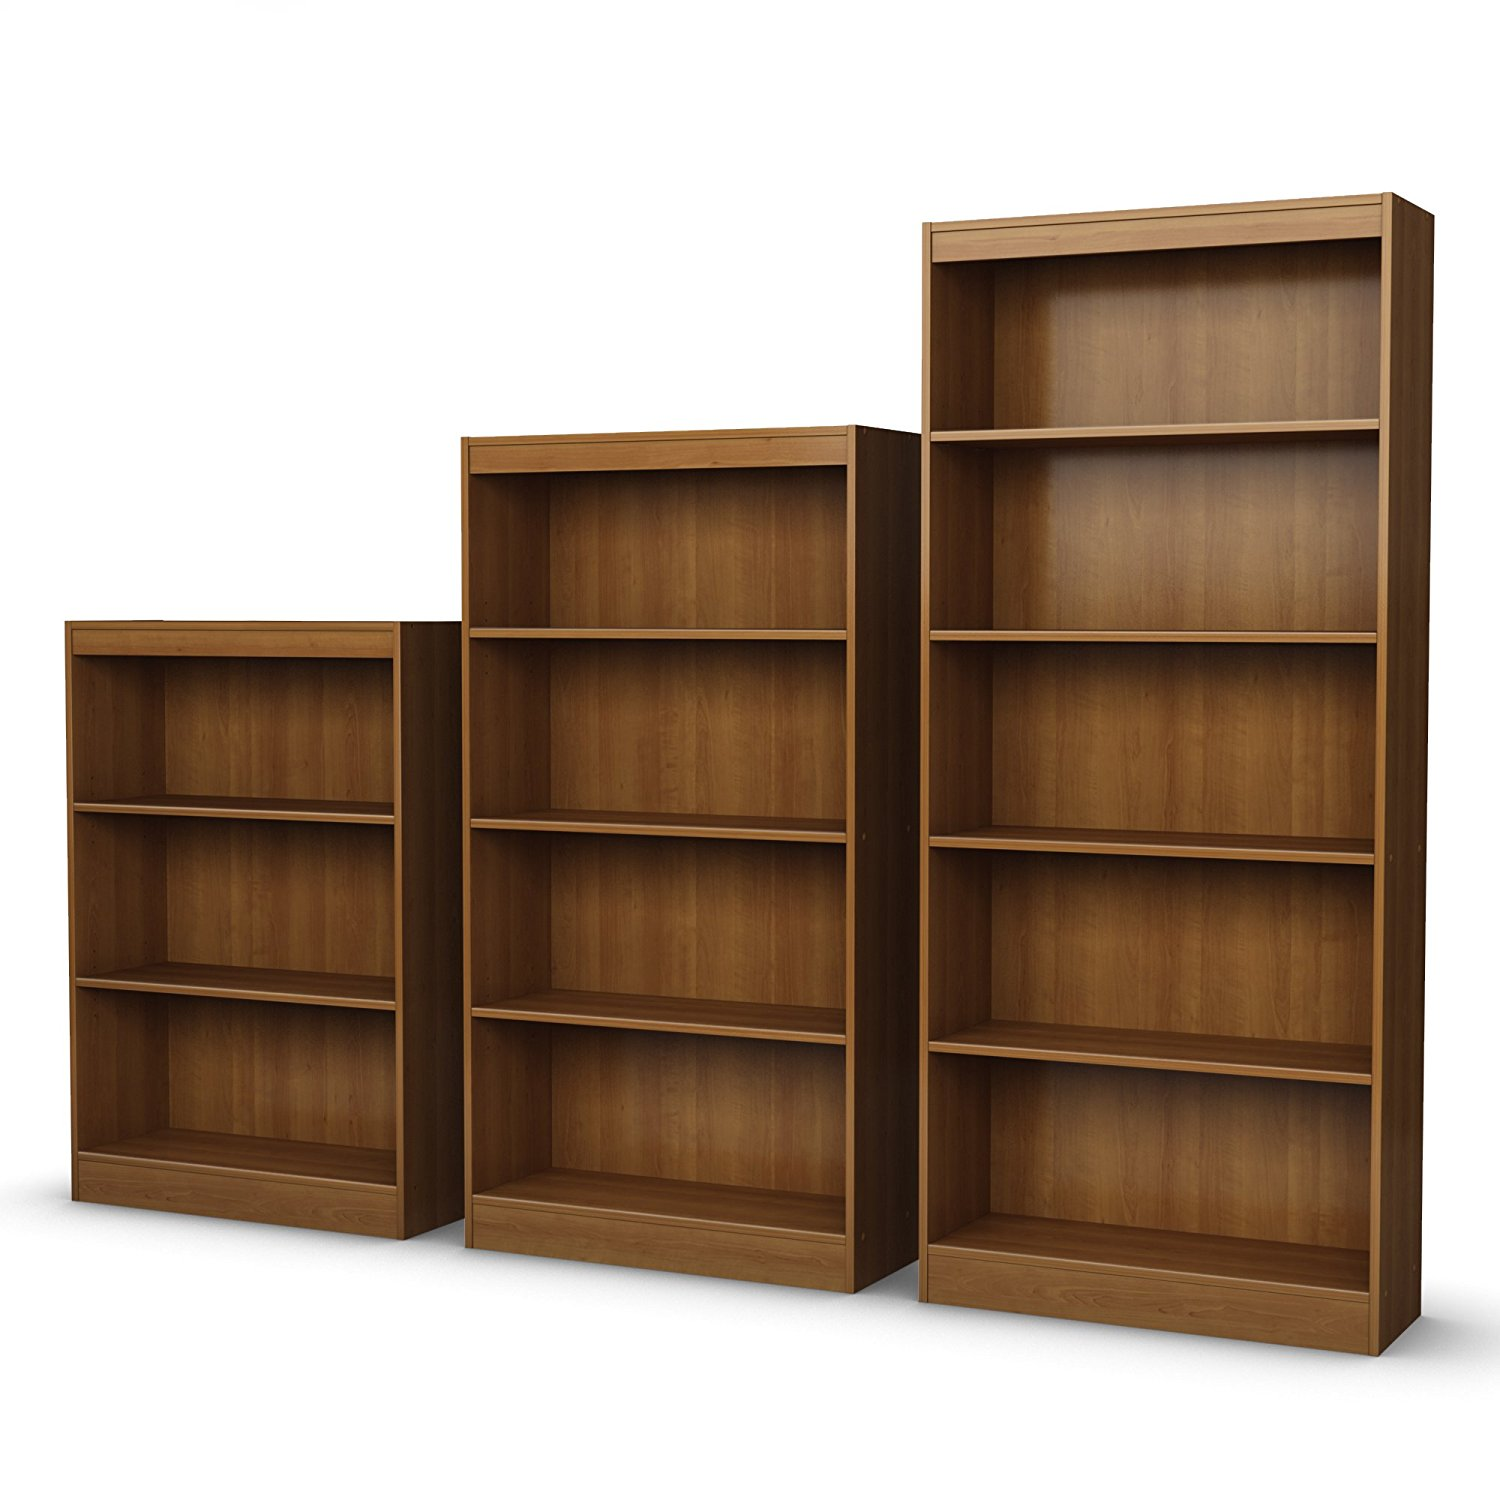 Axess Collection 4 Shelf Bookcase Morgan Cherry 2 Adjustable Shelves And 2 Fixed Shelves By South Shore